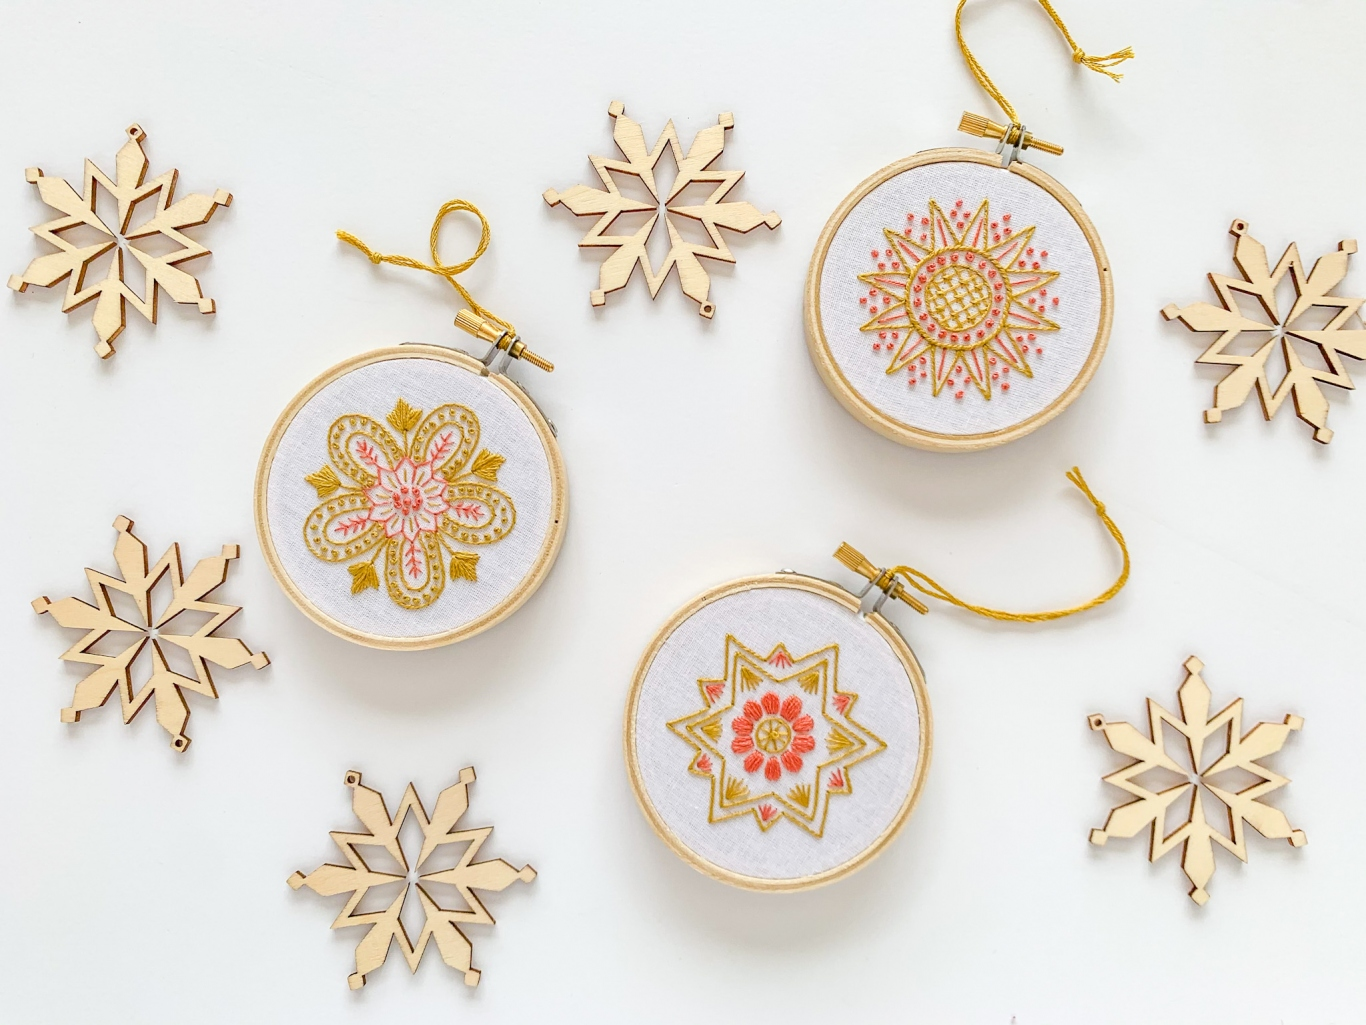 Christmas ornaments scattered on white background.